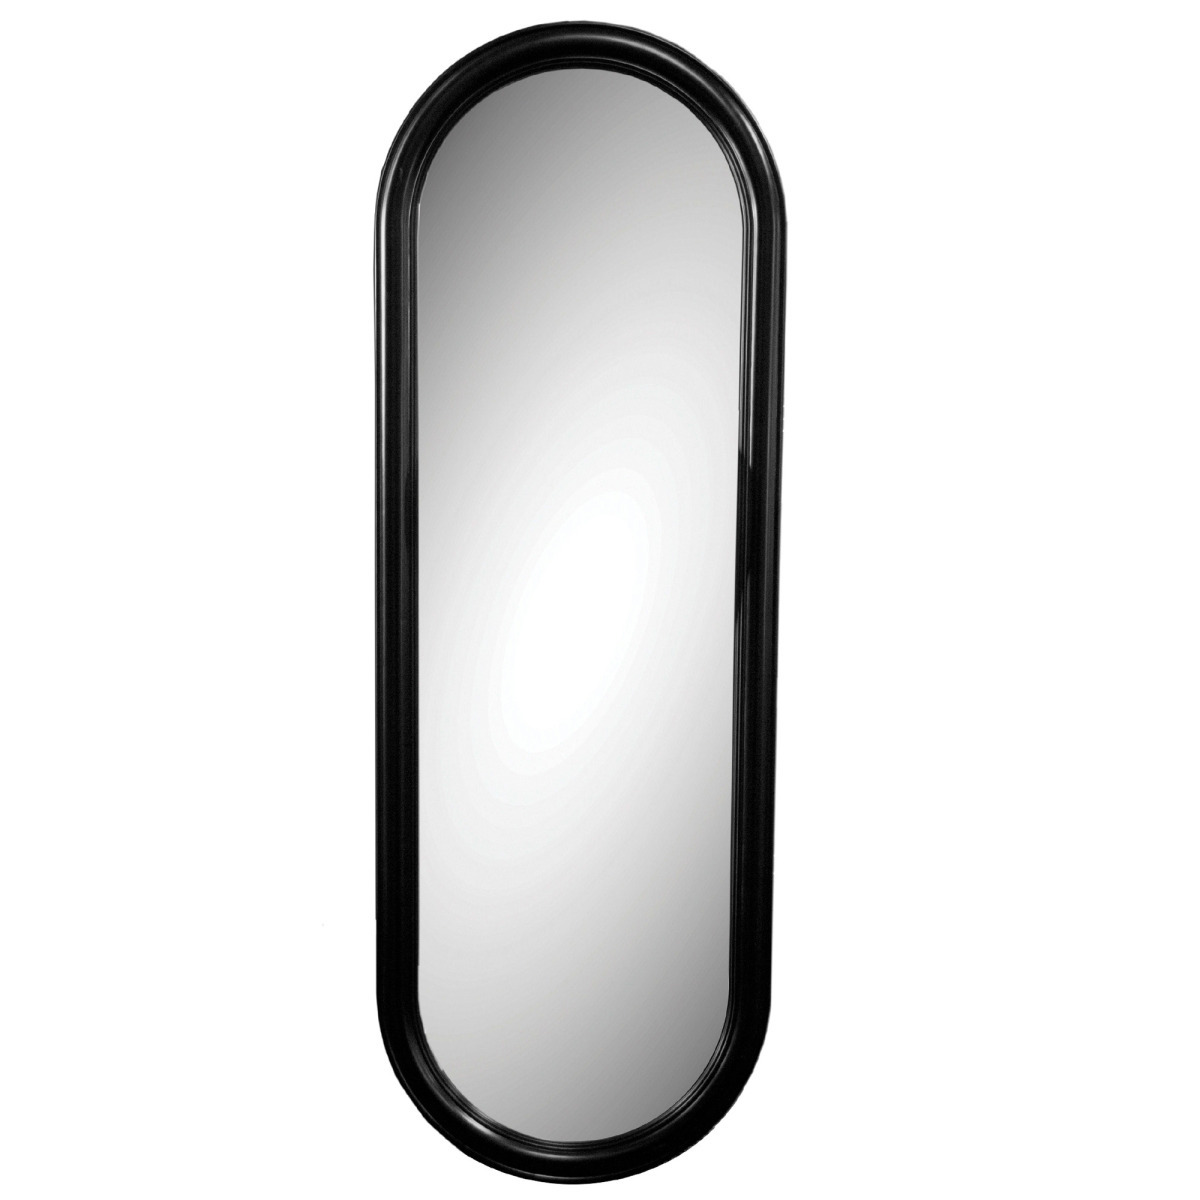 Black oval full length wall mirror april 2018 for Black full length wall mirror